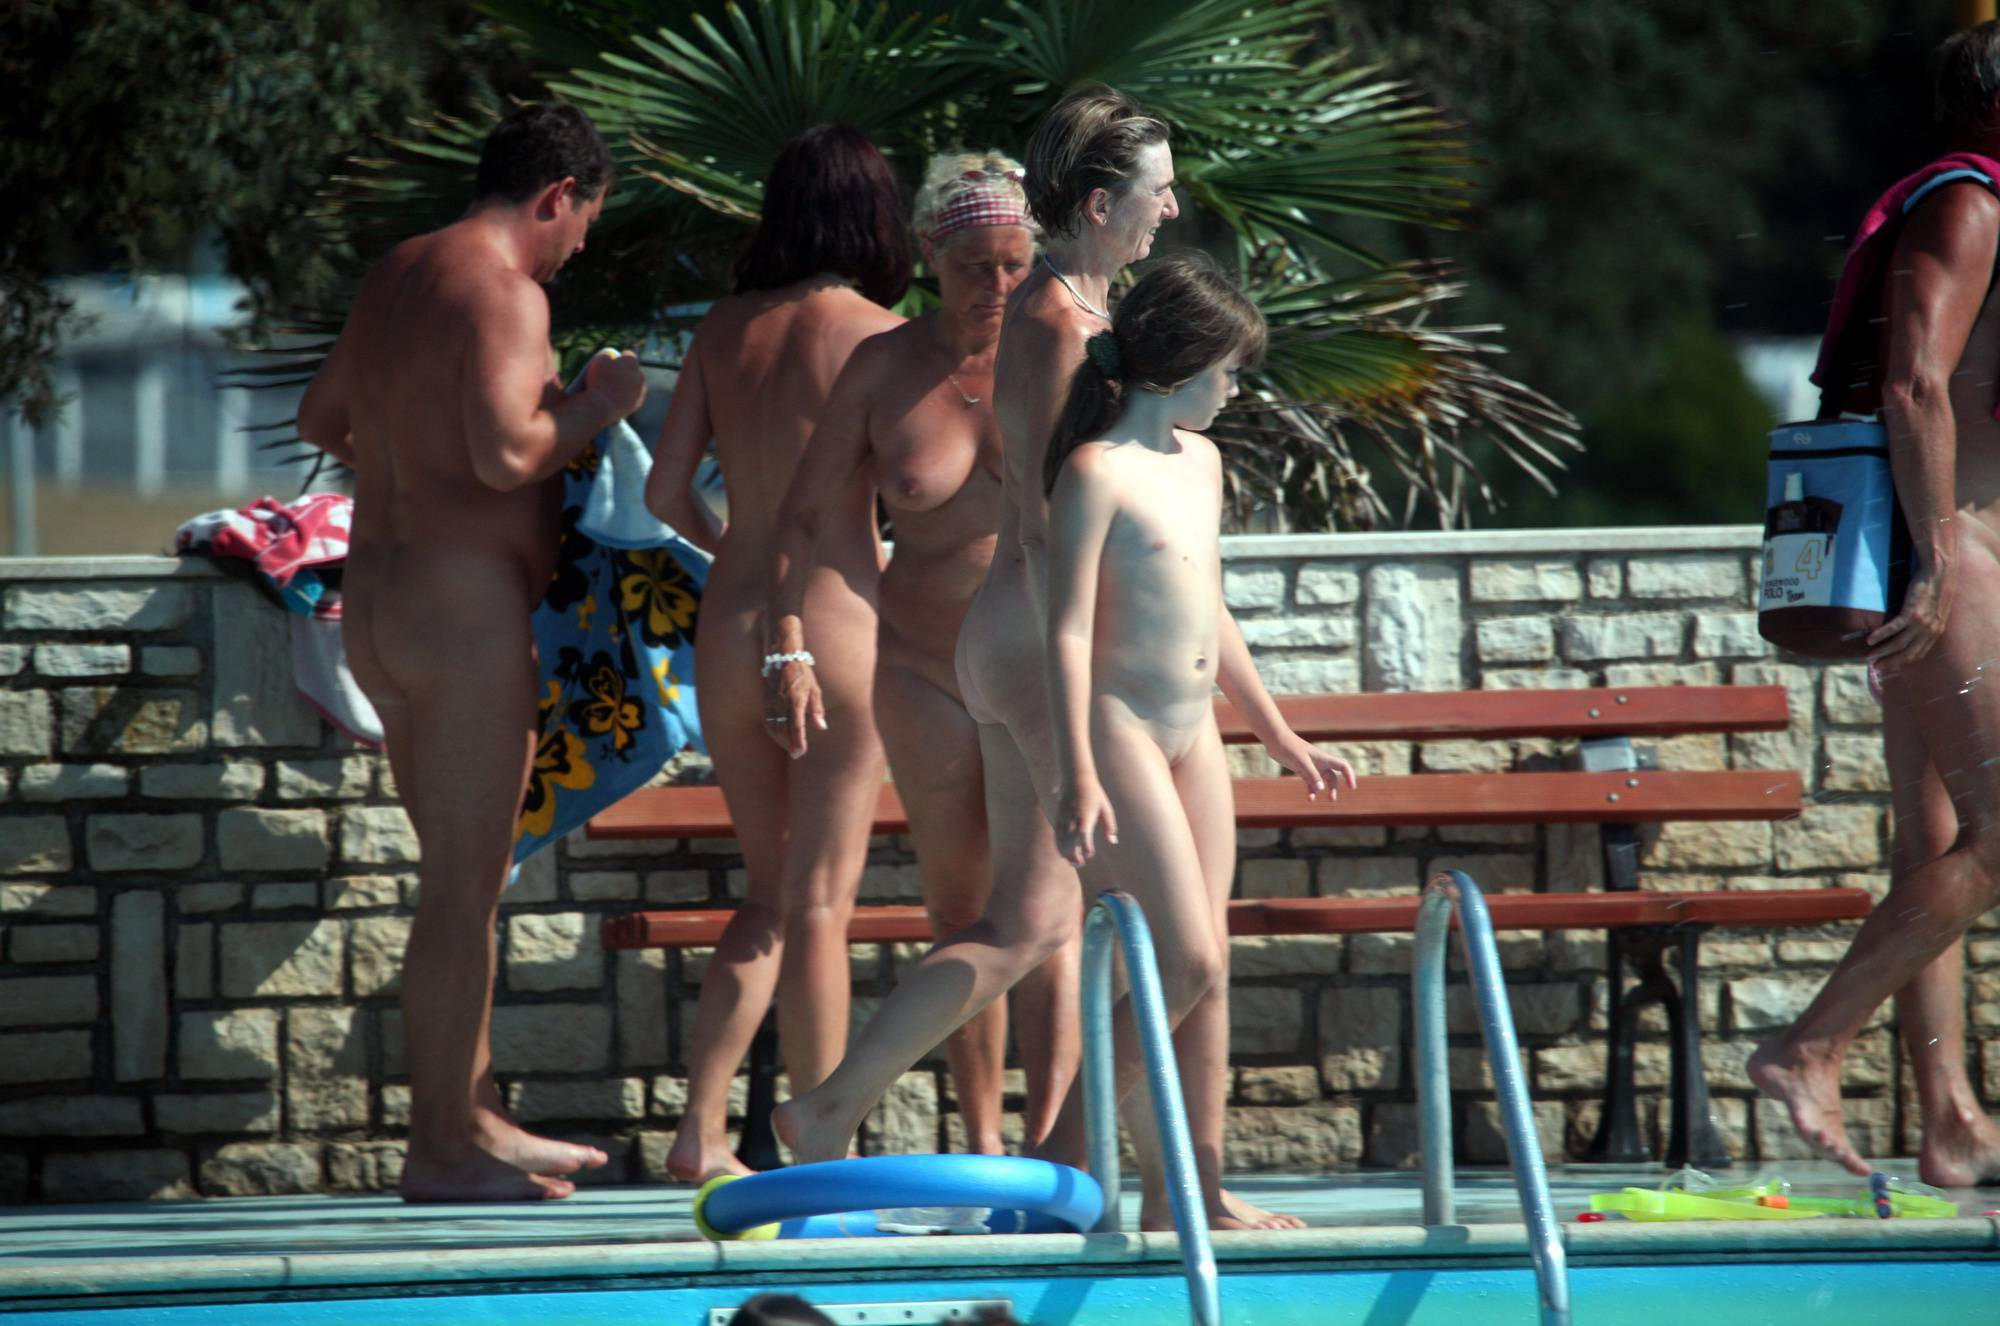 Naturist Pool Cleaning-Up - 1